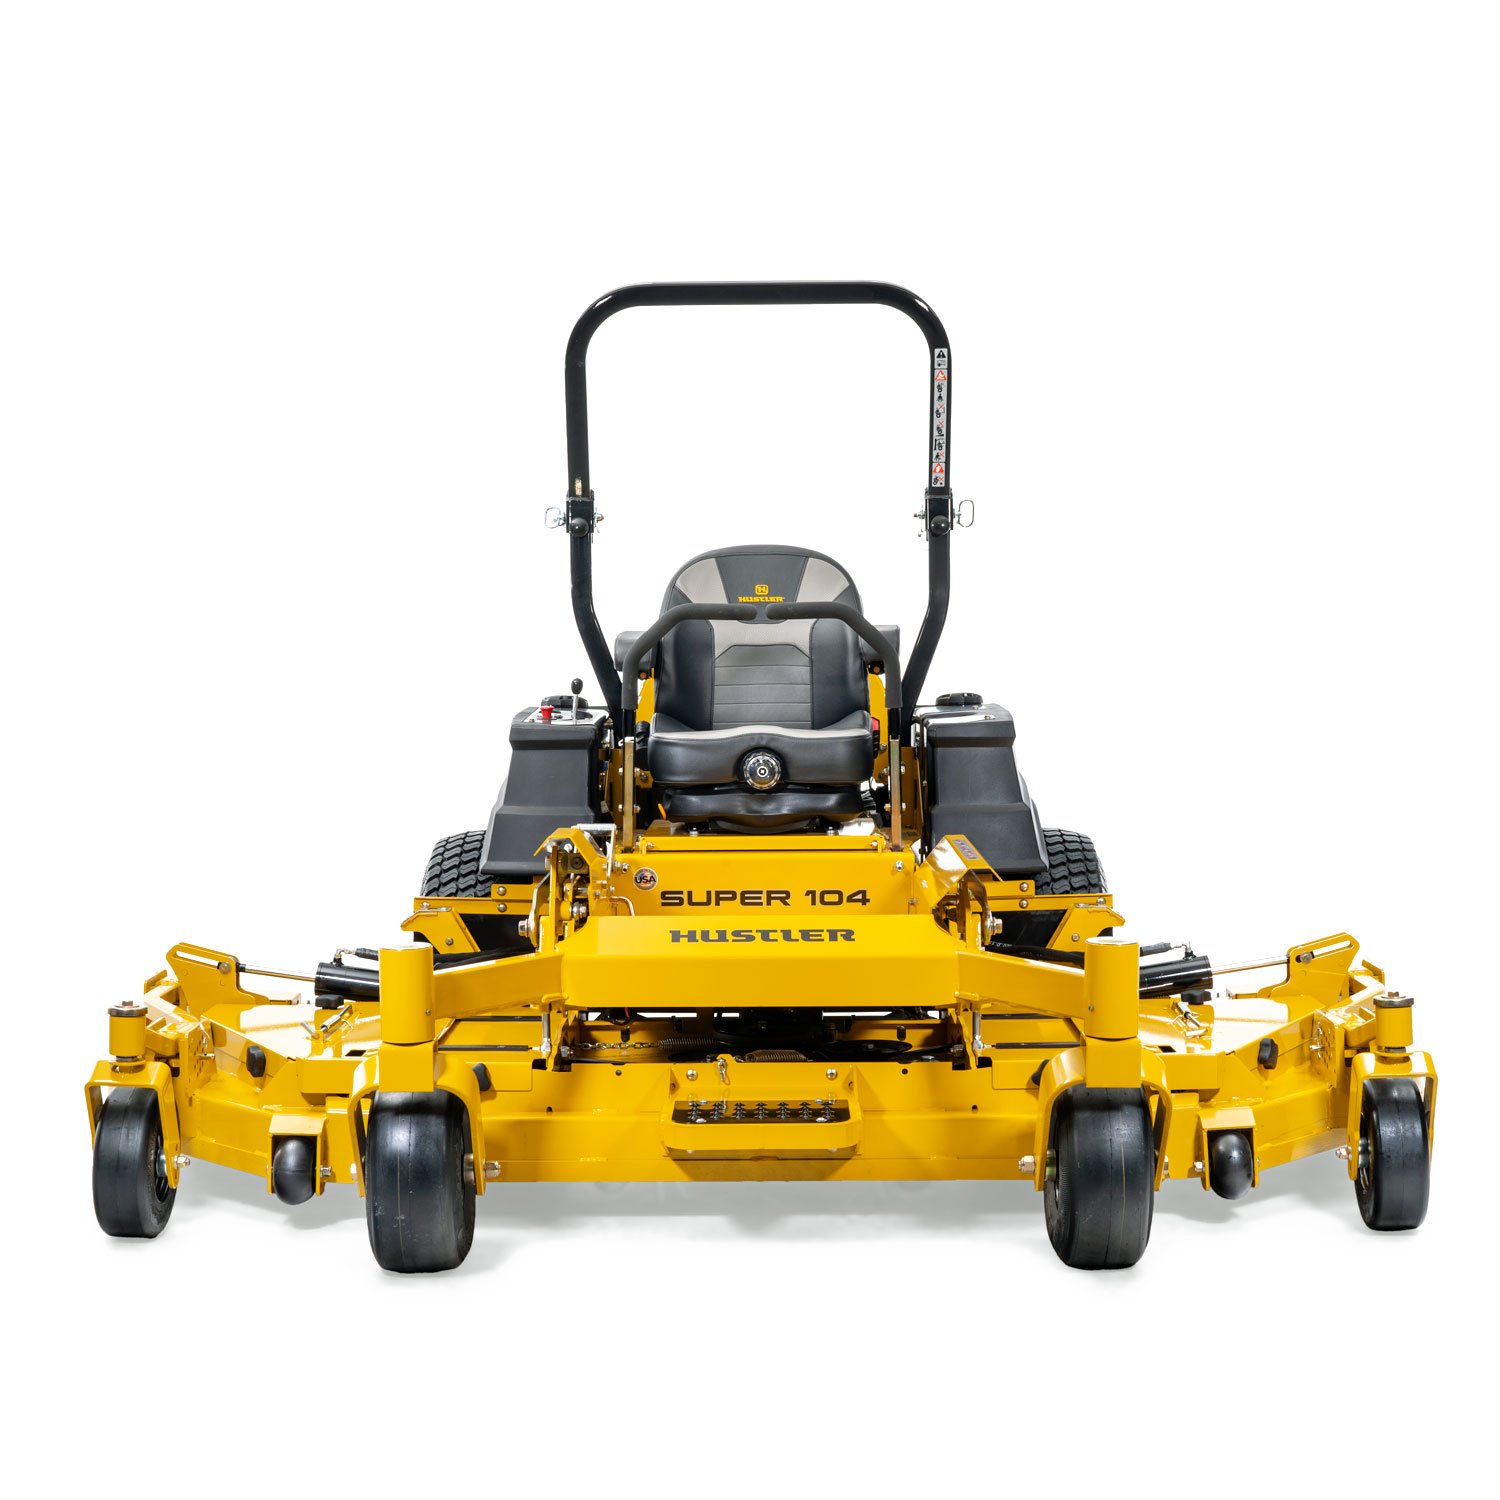 Image of the front of a yellow mower with fold out wing decks attached to the main deck